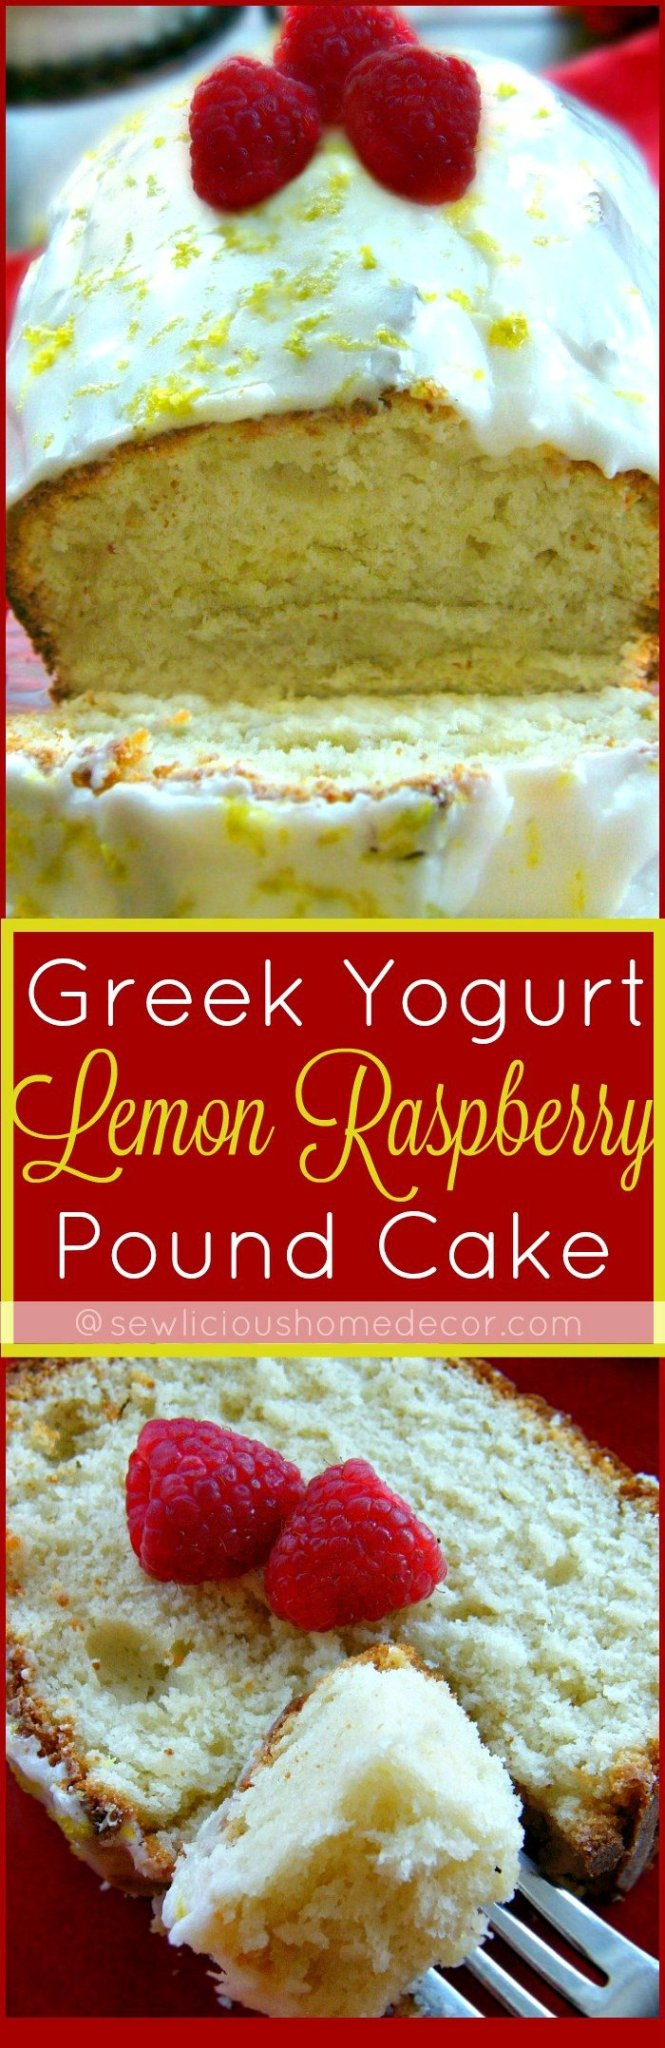 Greek Yogurt Lemon Raspberry Pound Cake sewlicioushomedecor.com